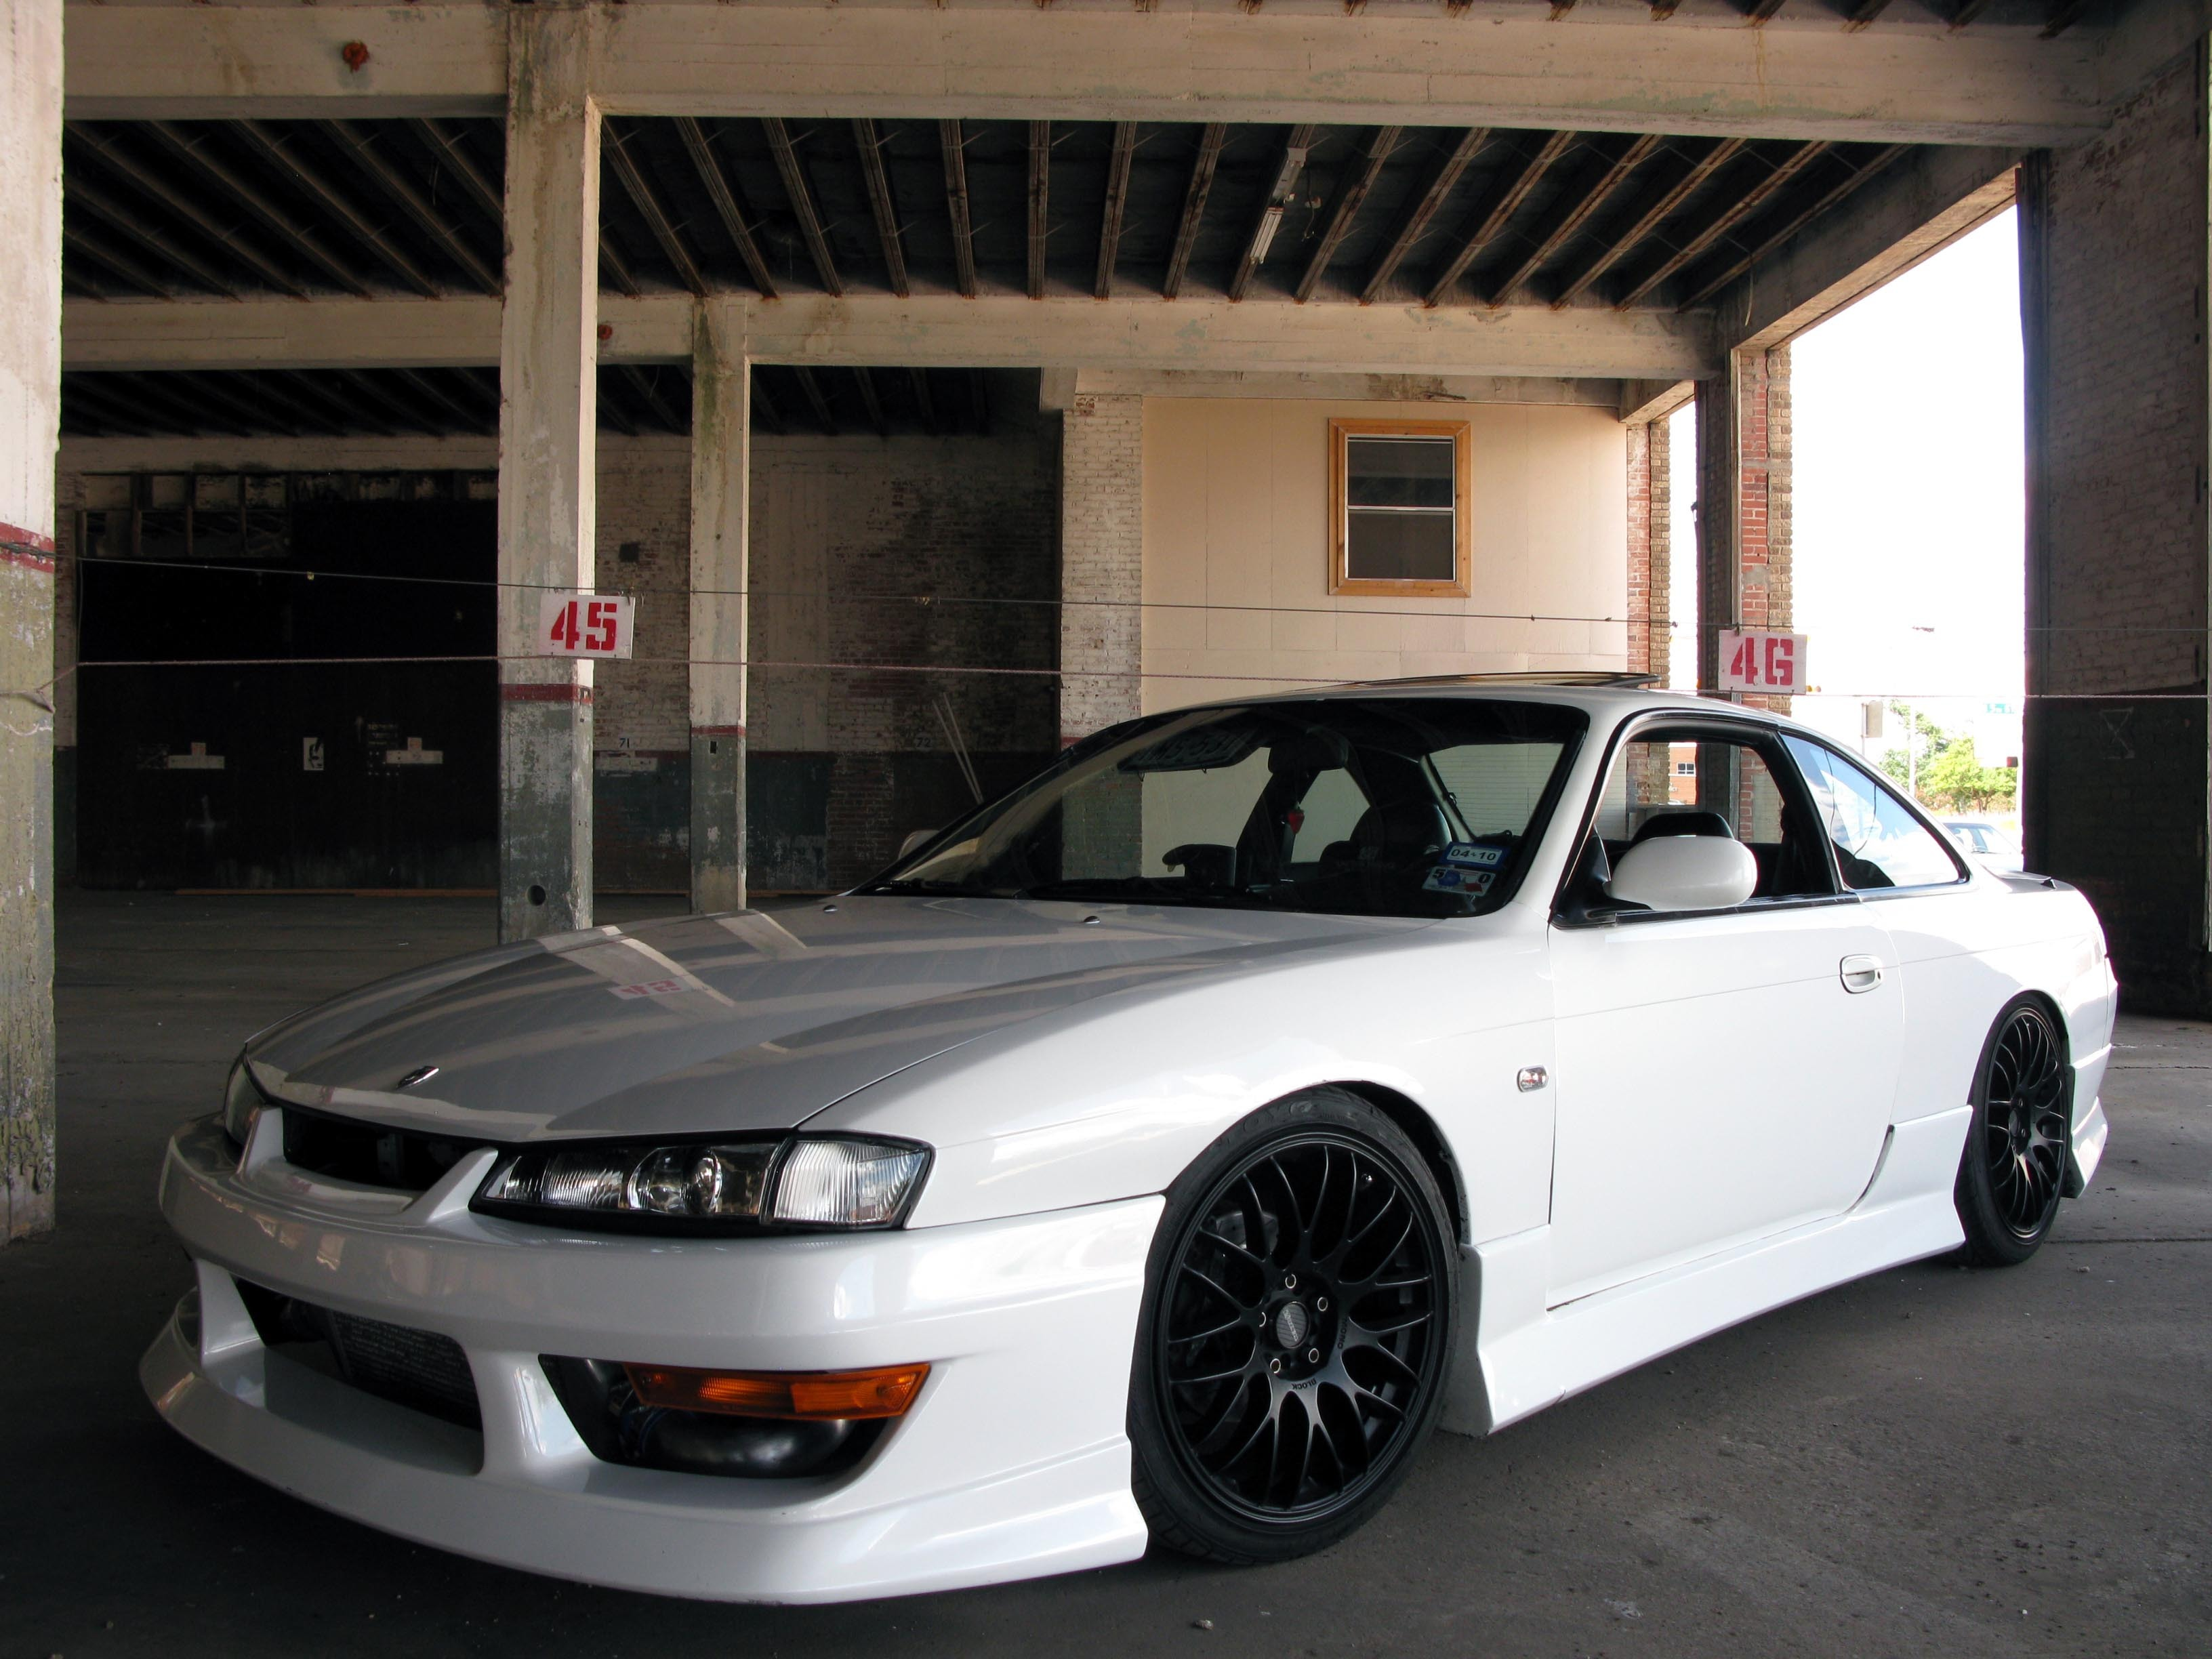 boosted_kouki 1998 Nissan 240SX 13073559